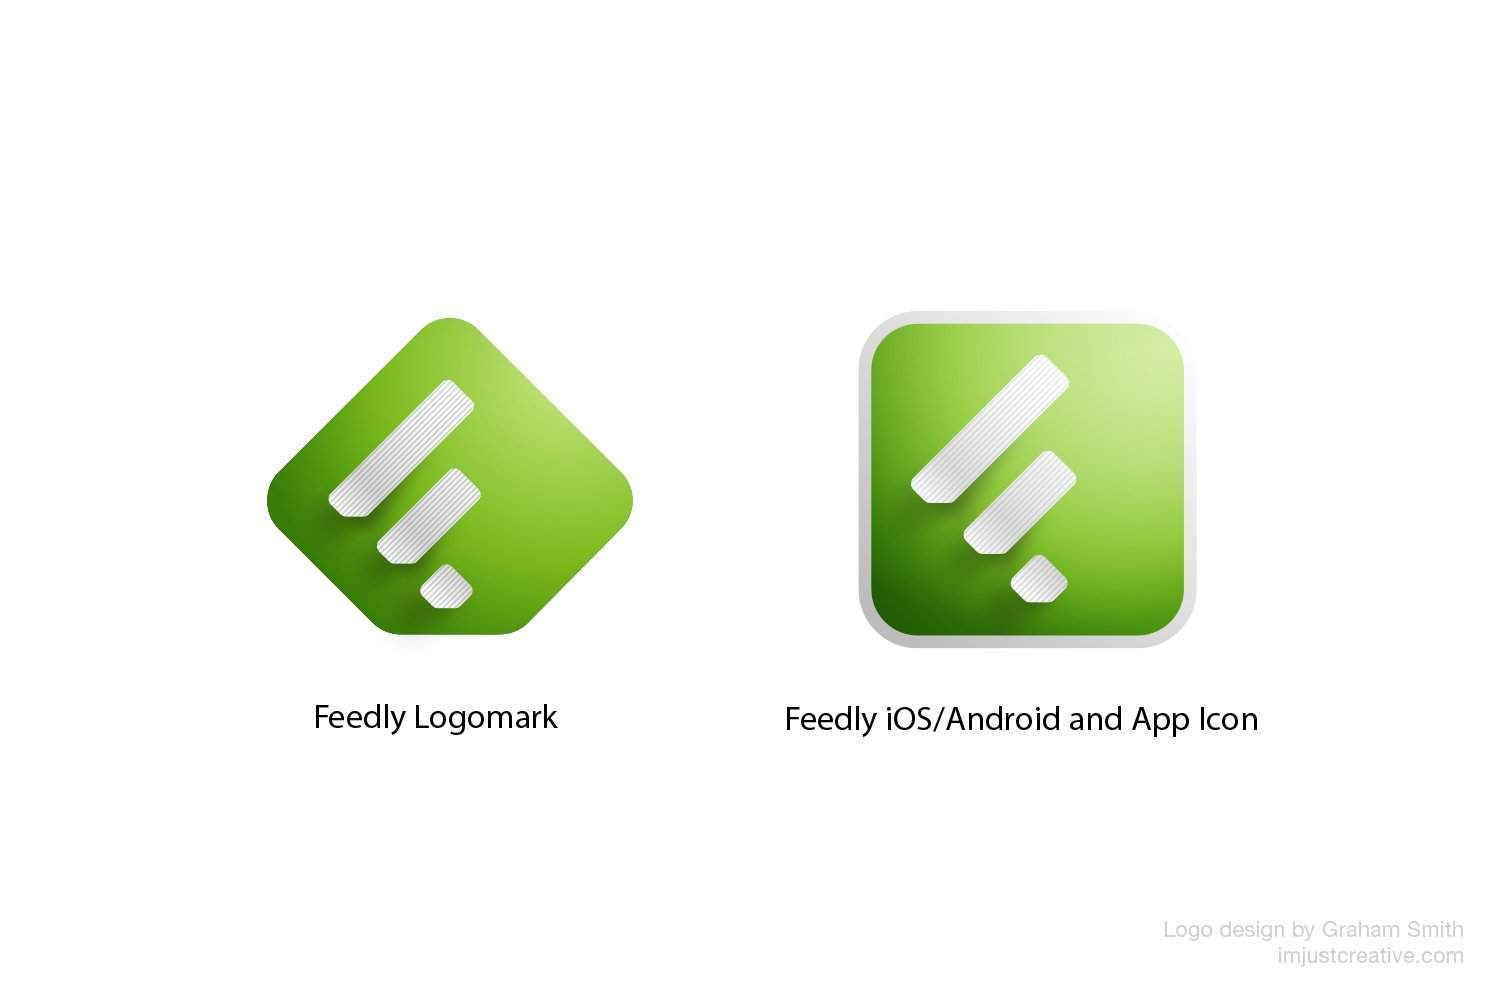 Feedly logo and app icons design by imjustcreative